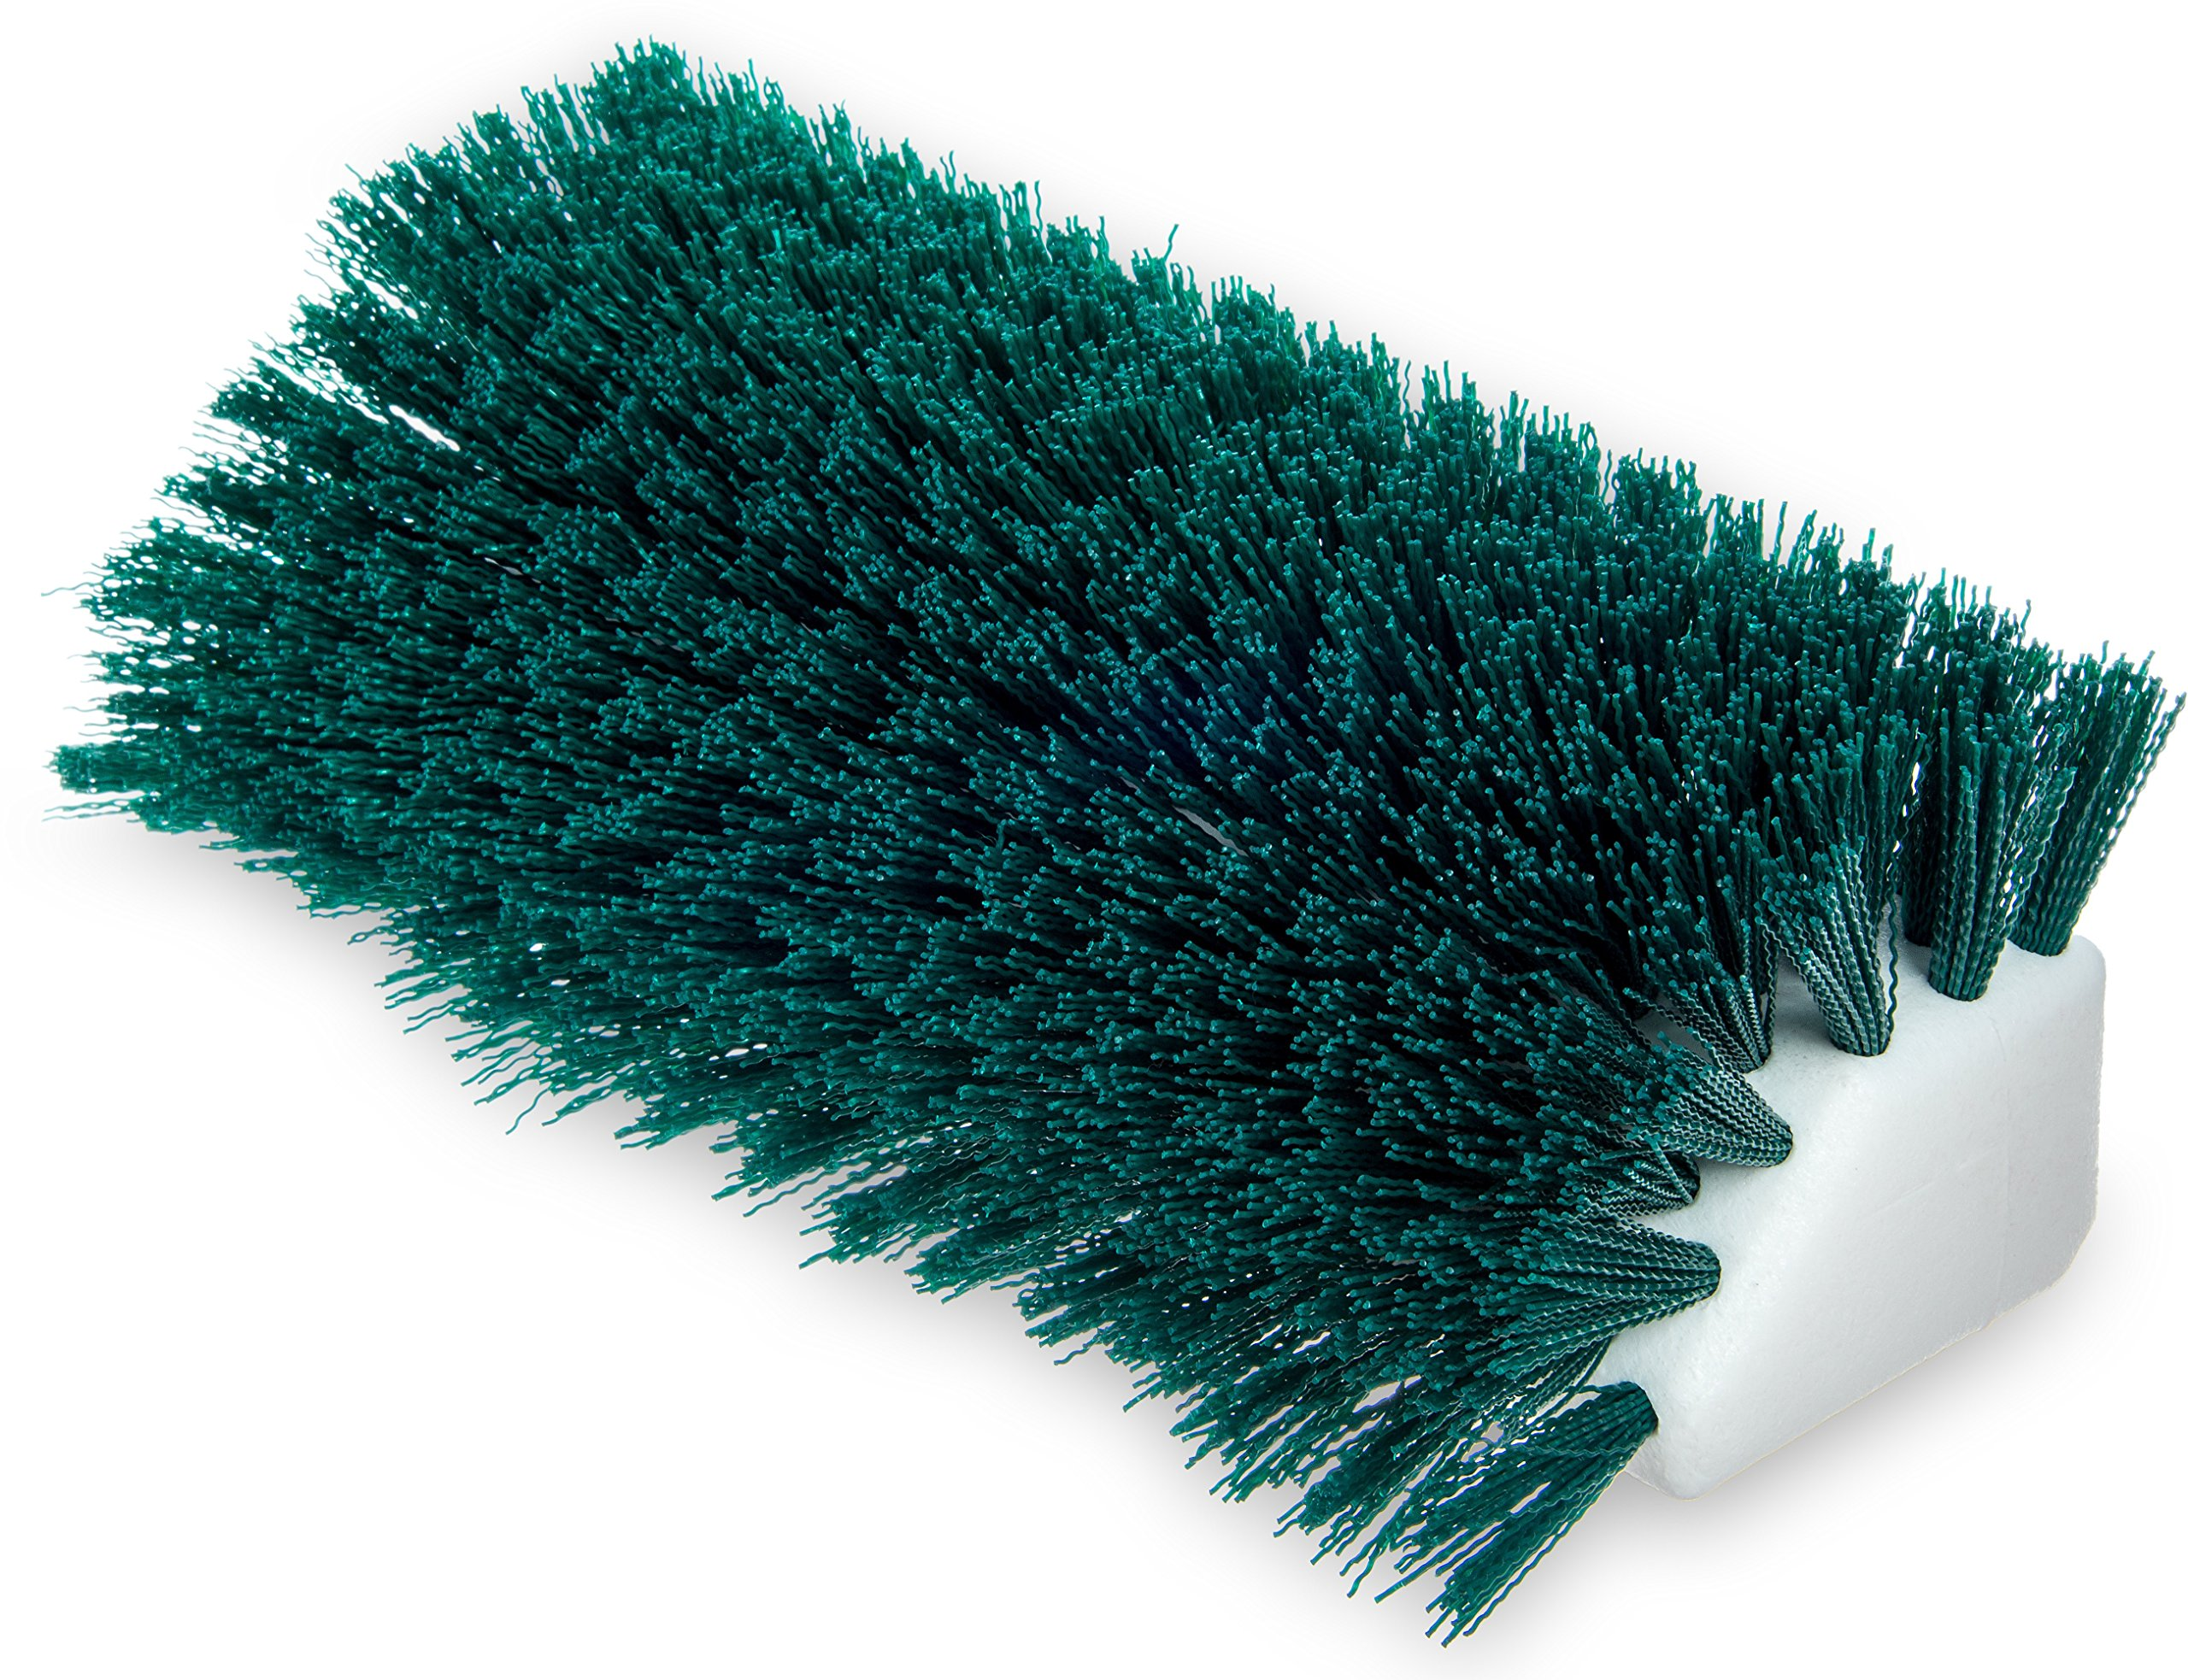 Carlisle 4042309 Hi-Lo Floor Scrub Brush, Green (Pack of 12) by Carlisle (Image #1)